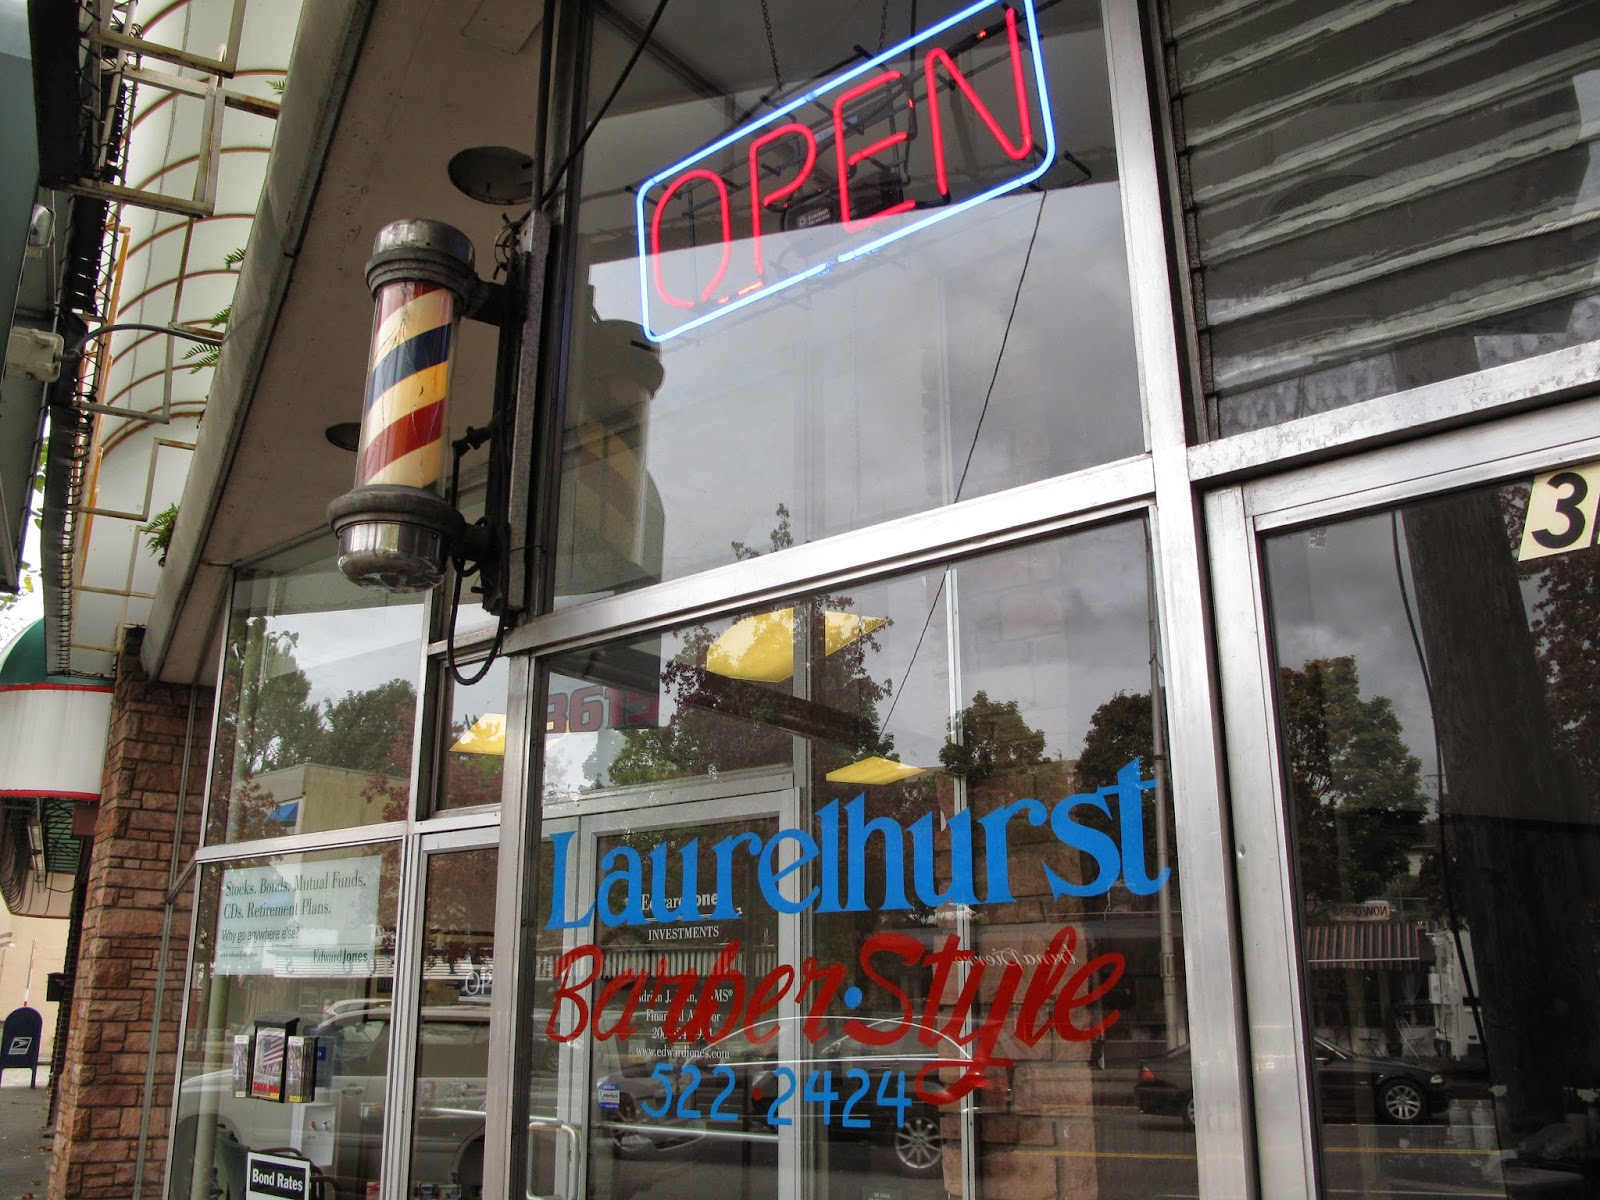 Barber Shop Hours : ... Barber And Style Shop Going Under New Ownership, Longer Hours And